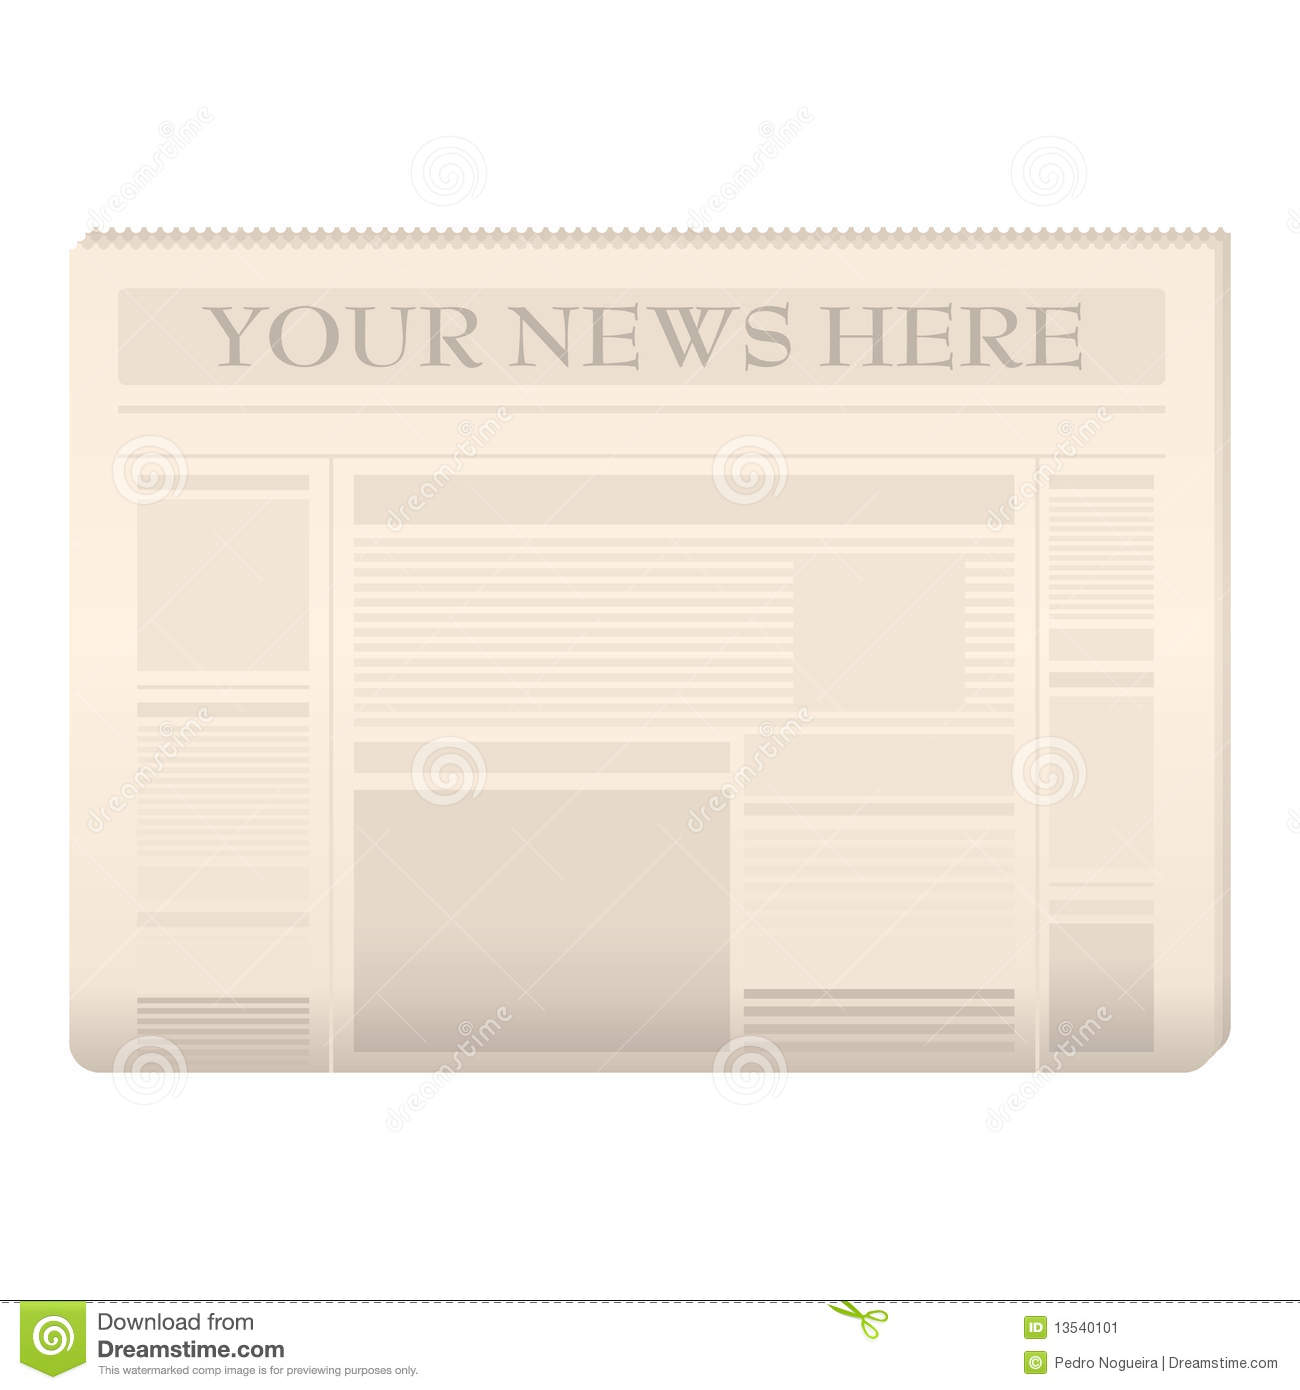 Newspaper Headline Template Illustrations 299 Newspaper – Newspaper Headline Template